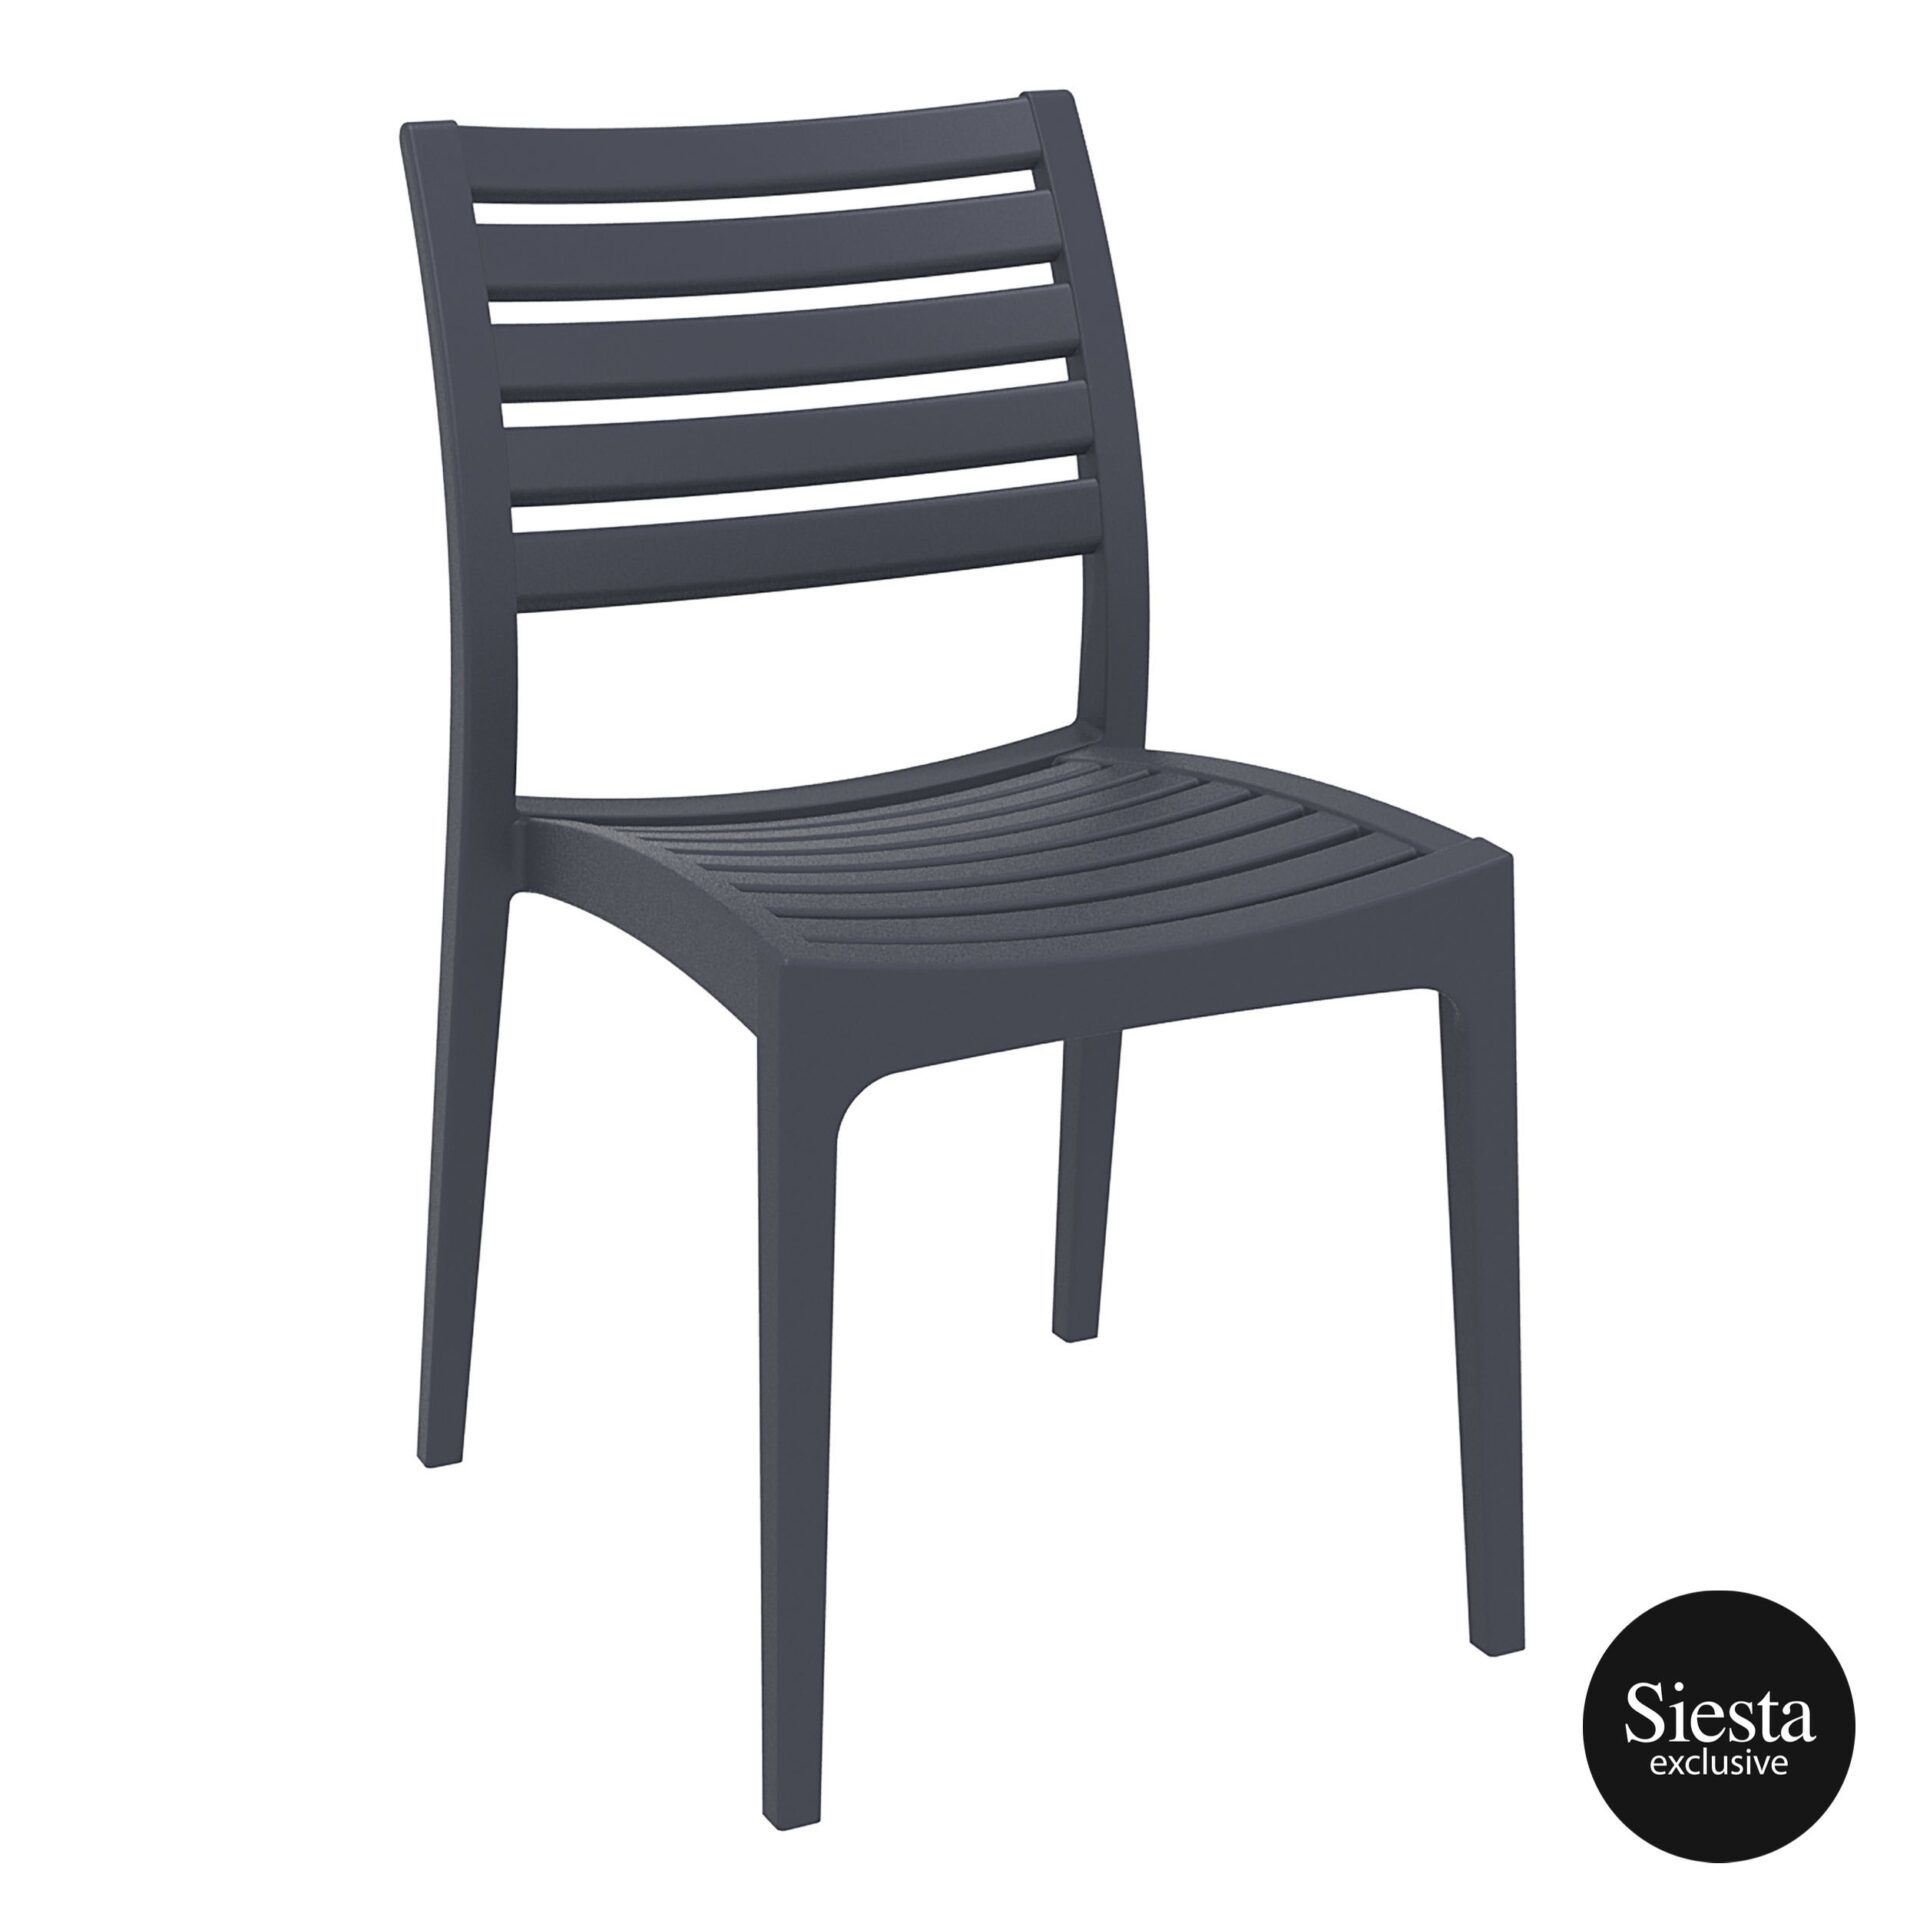 Outdoor Ares Chair darkgrey front side